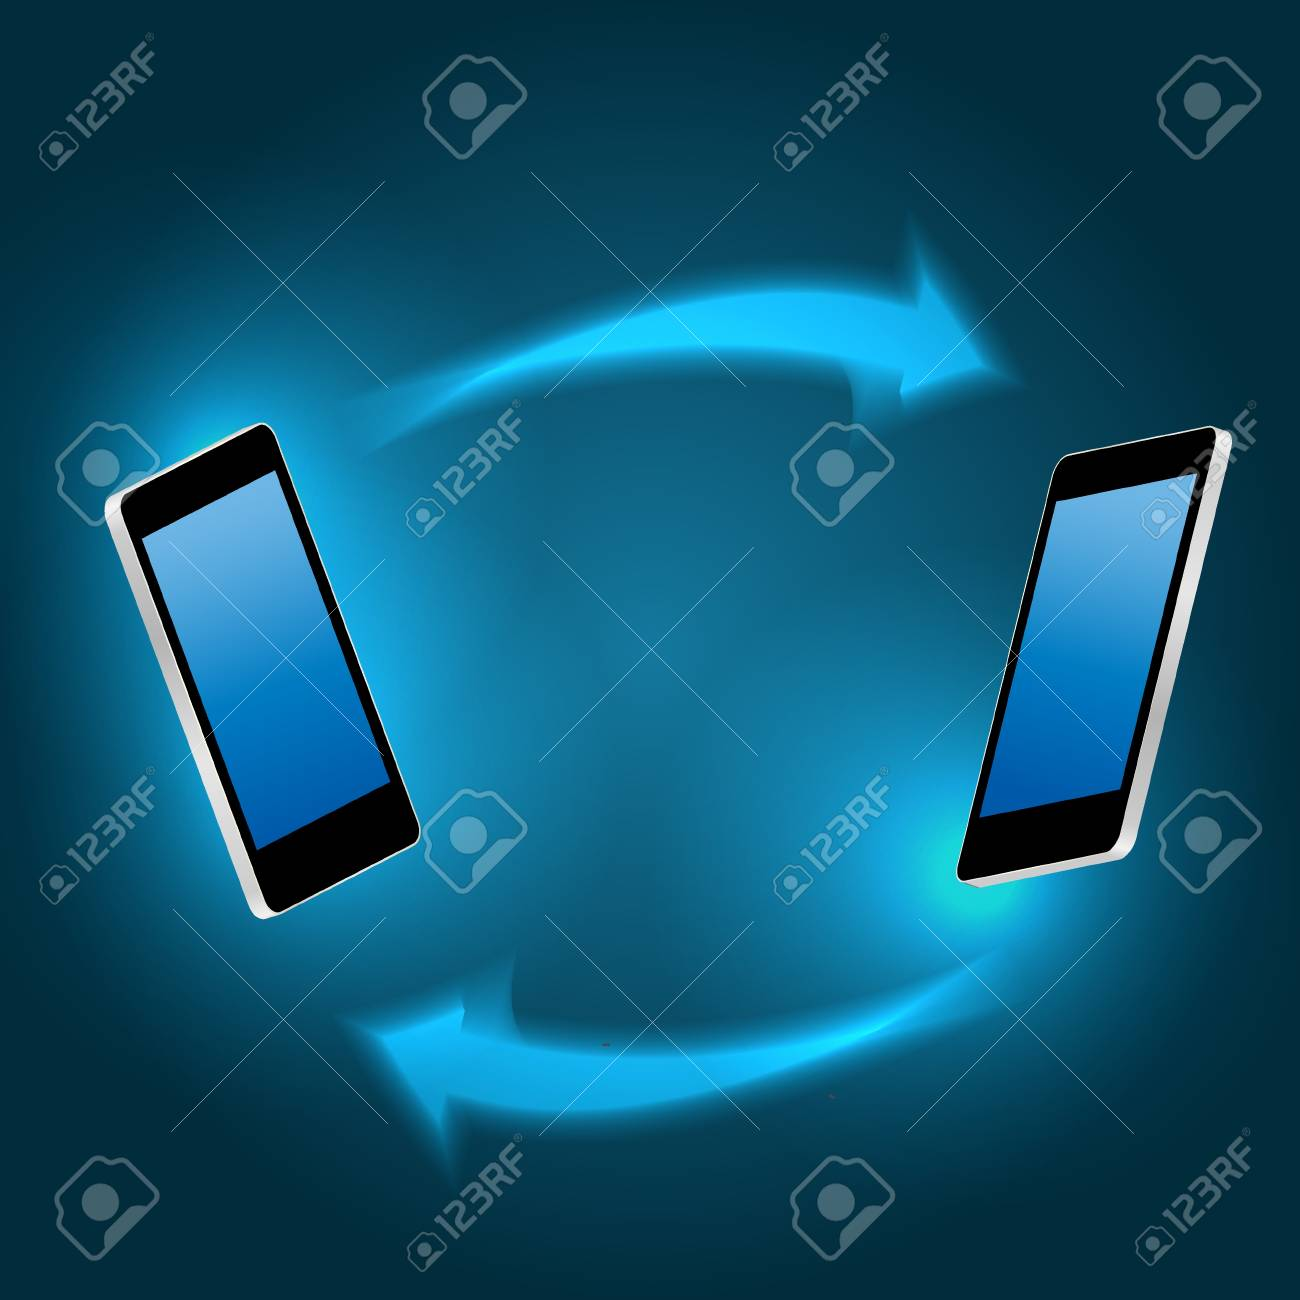 Global connecting concept with mobile phone illustration Stock Vector - 21318212